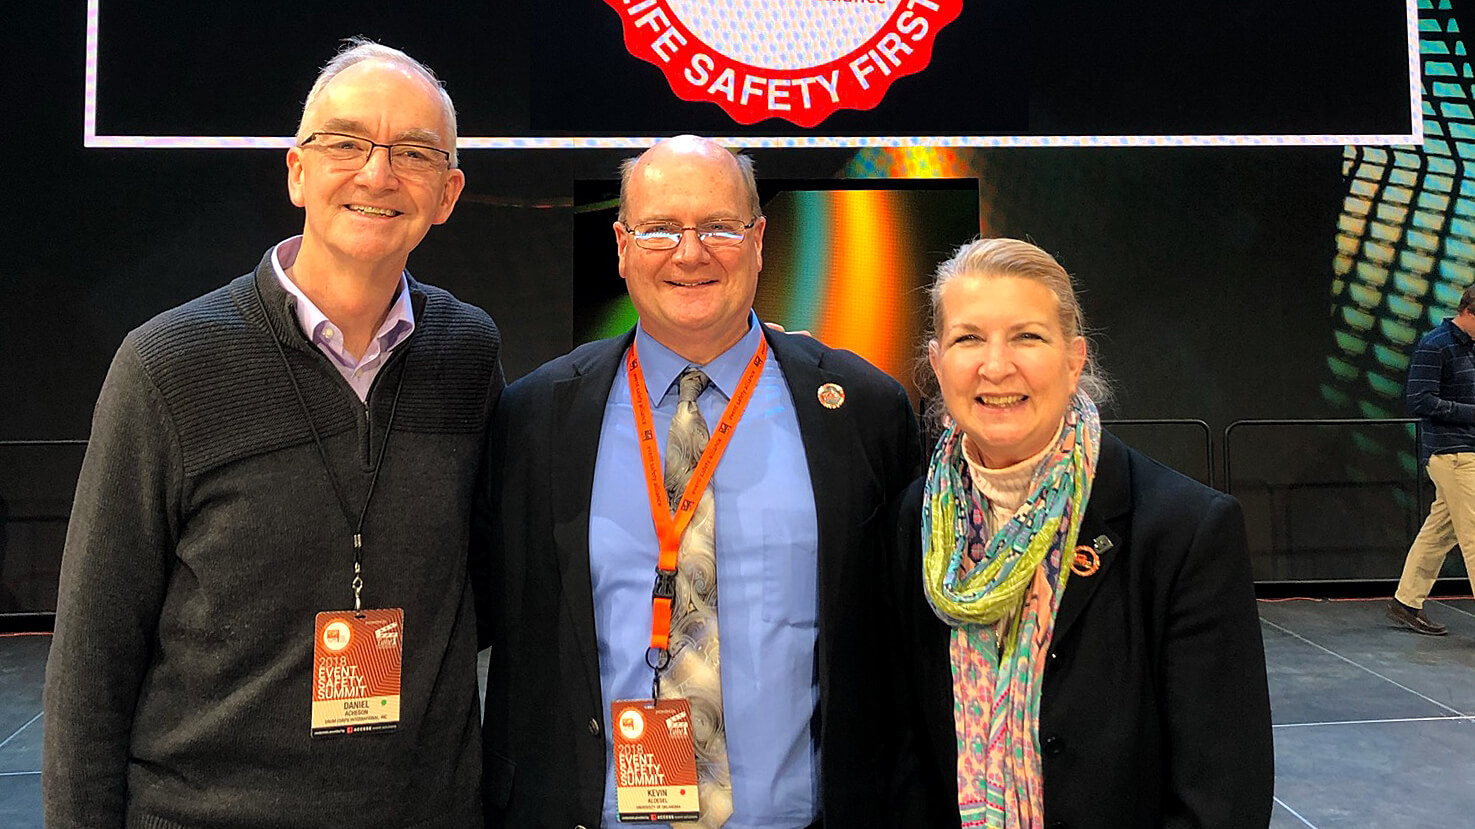 2018 Event Safety Summit